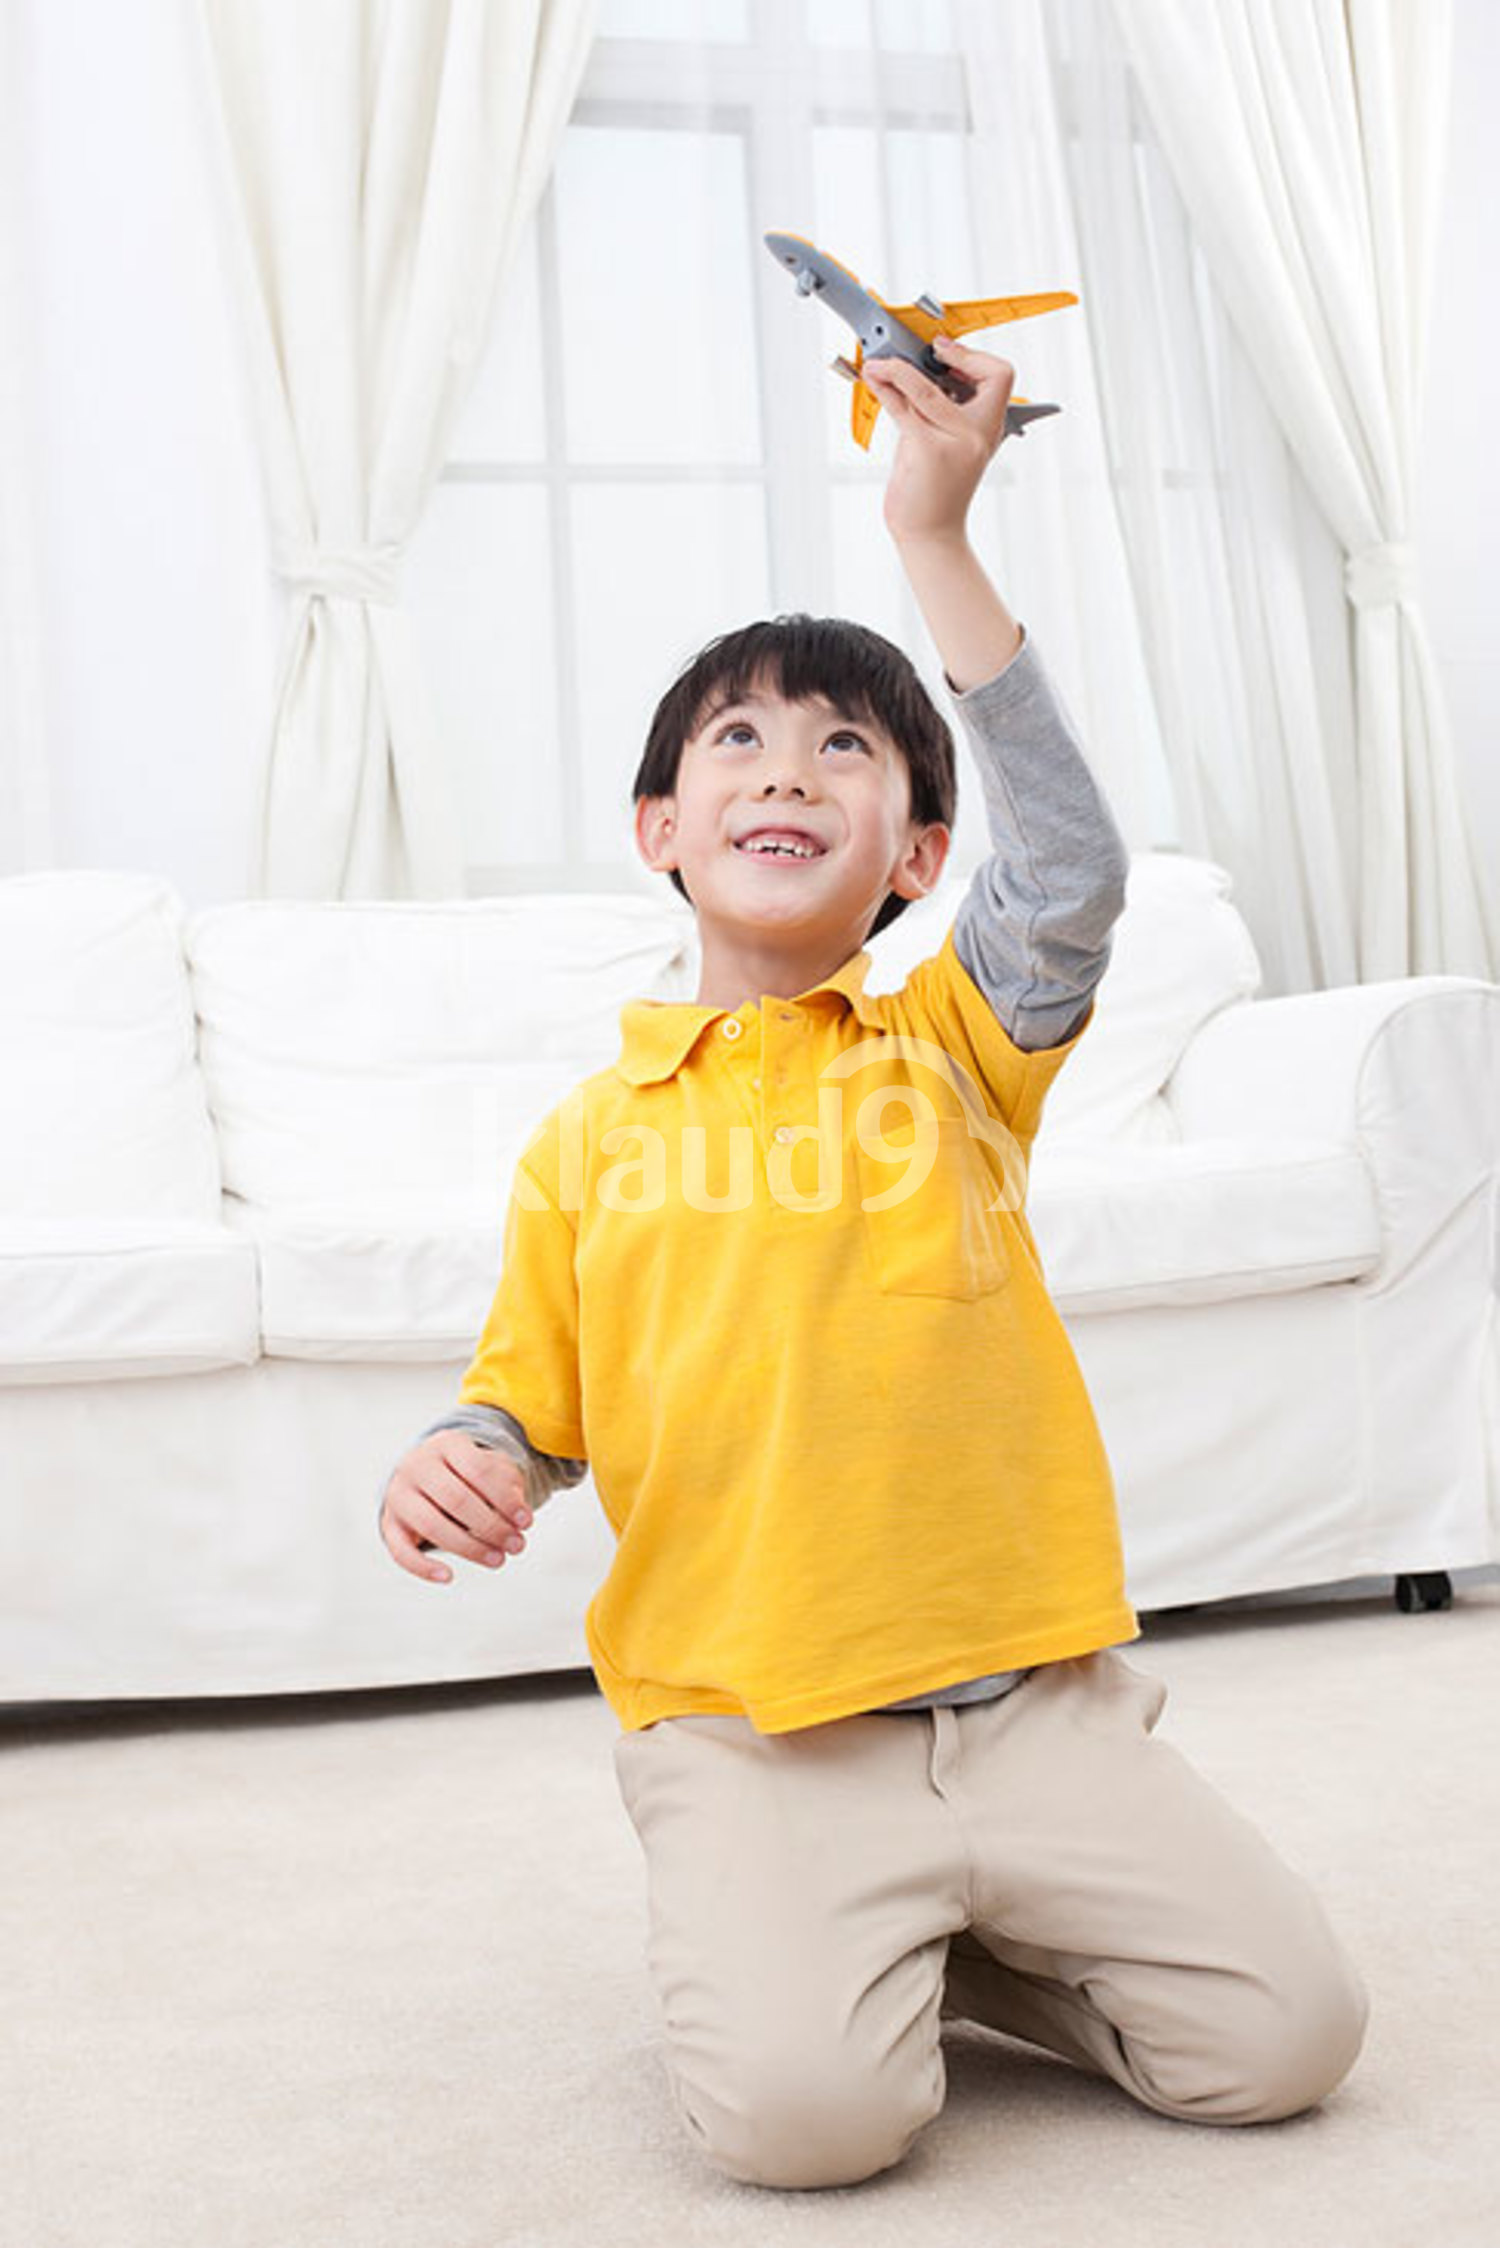 Little Chinese boy playing toy plane